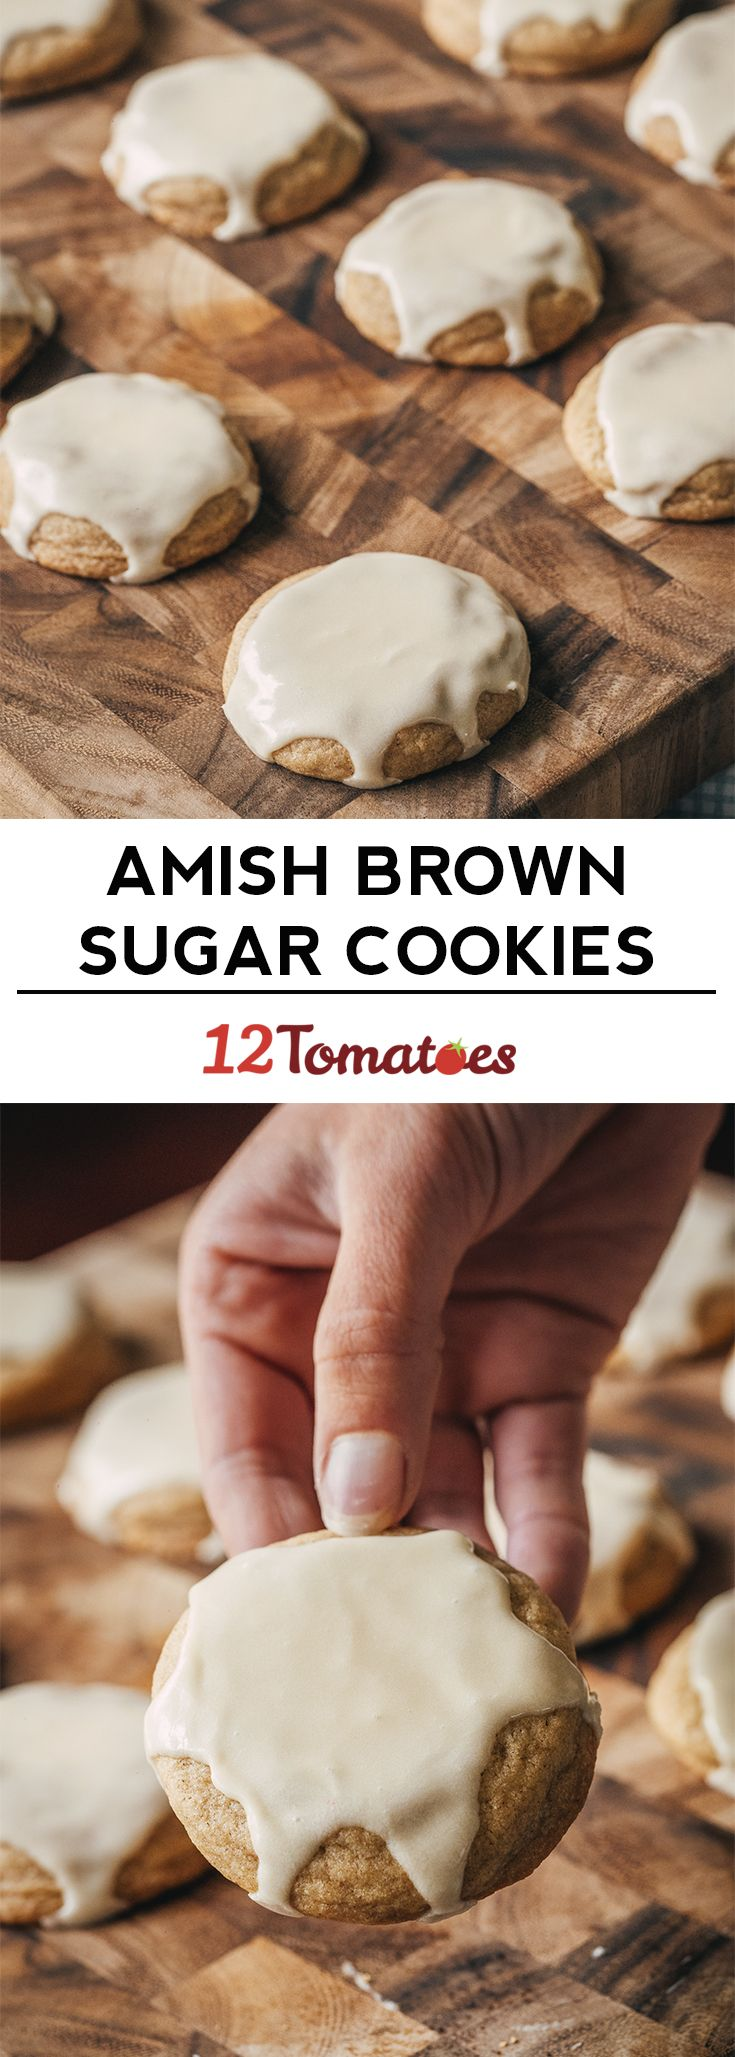 Amish brown sugar cookies